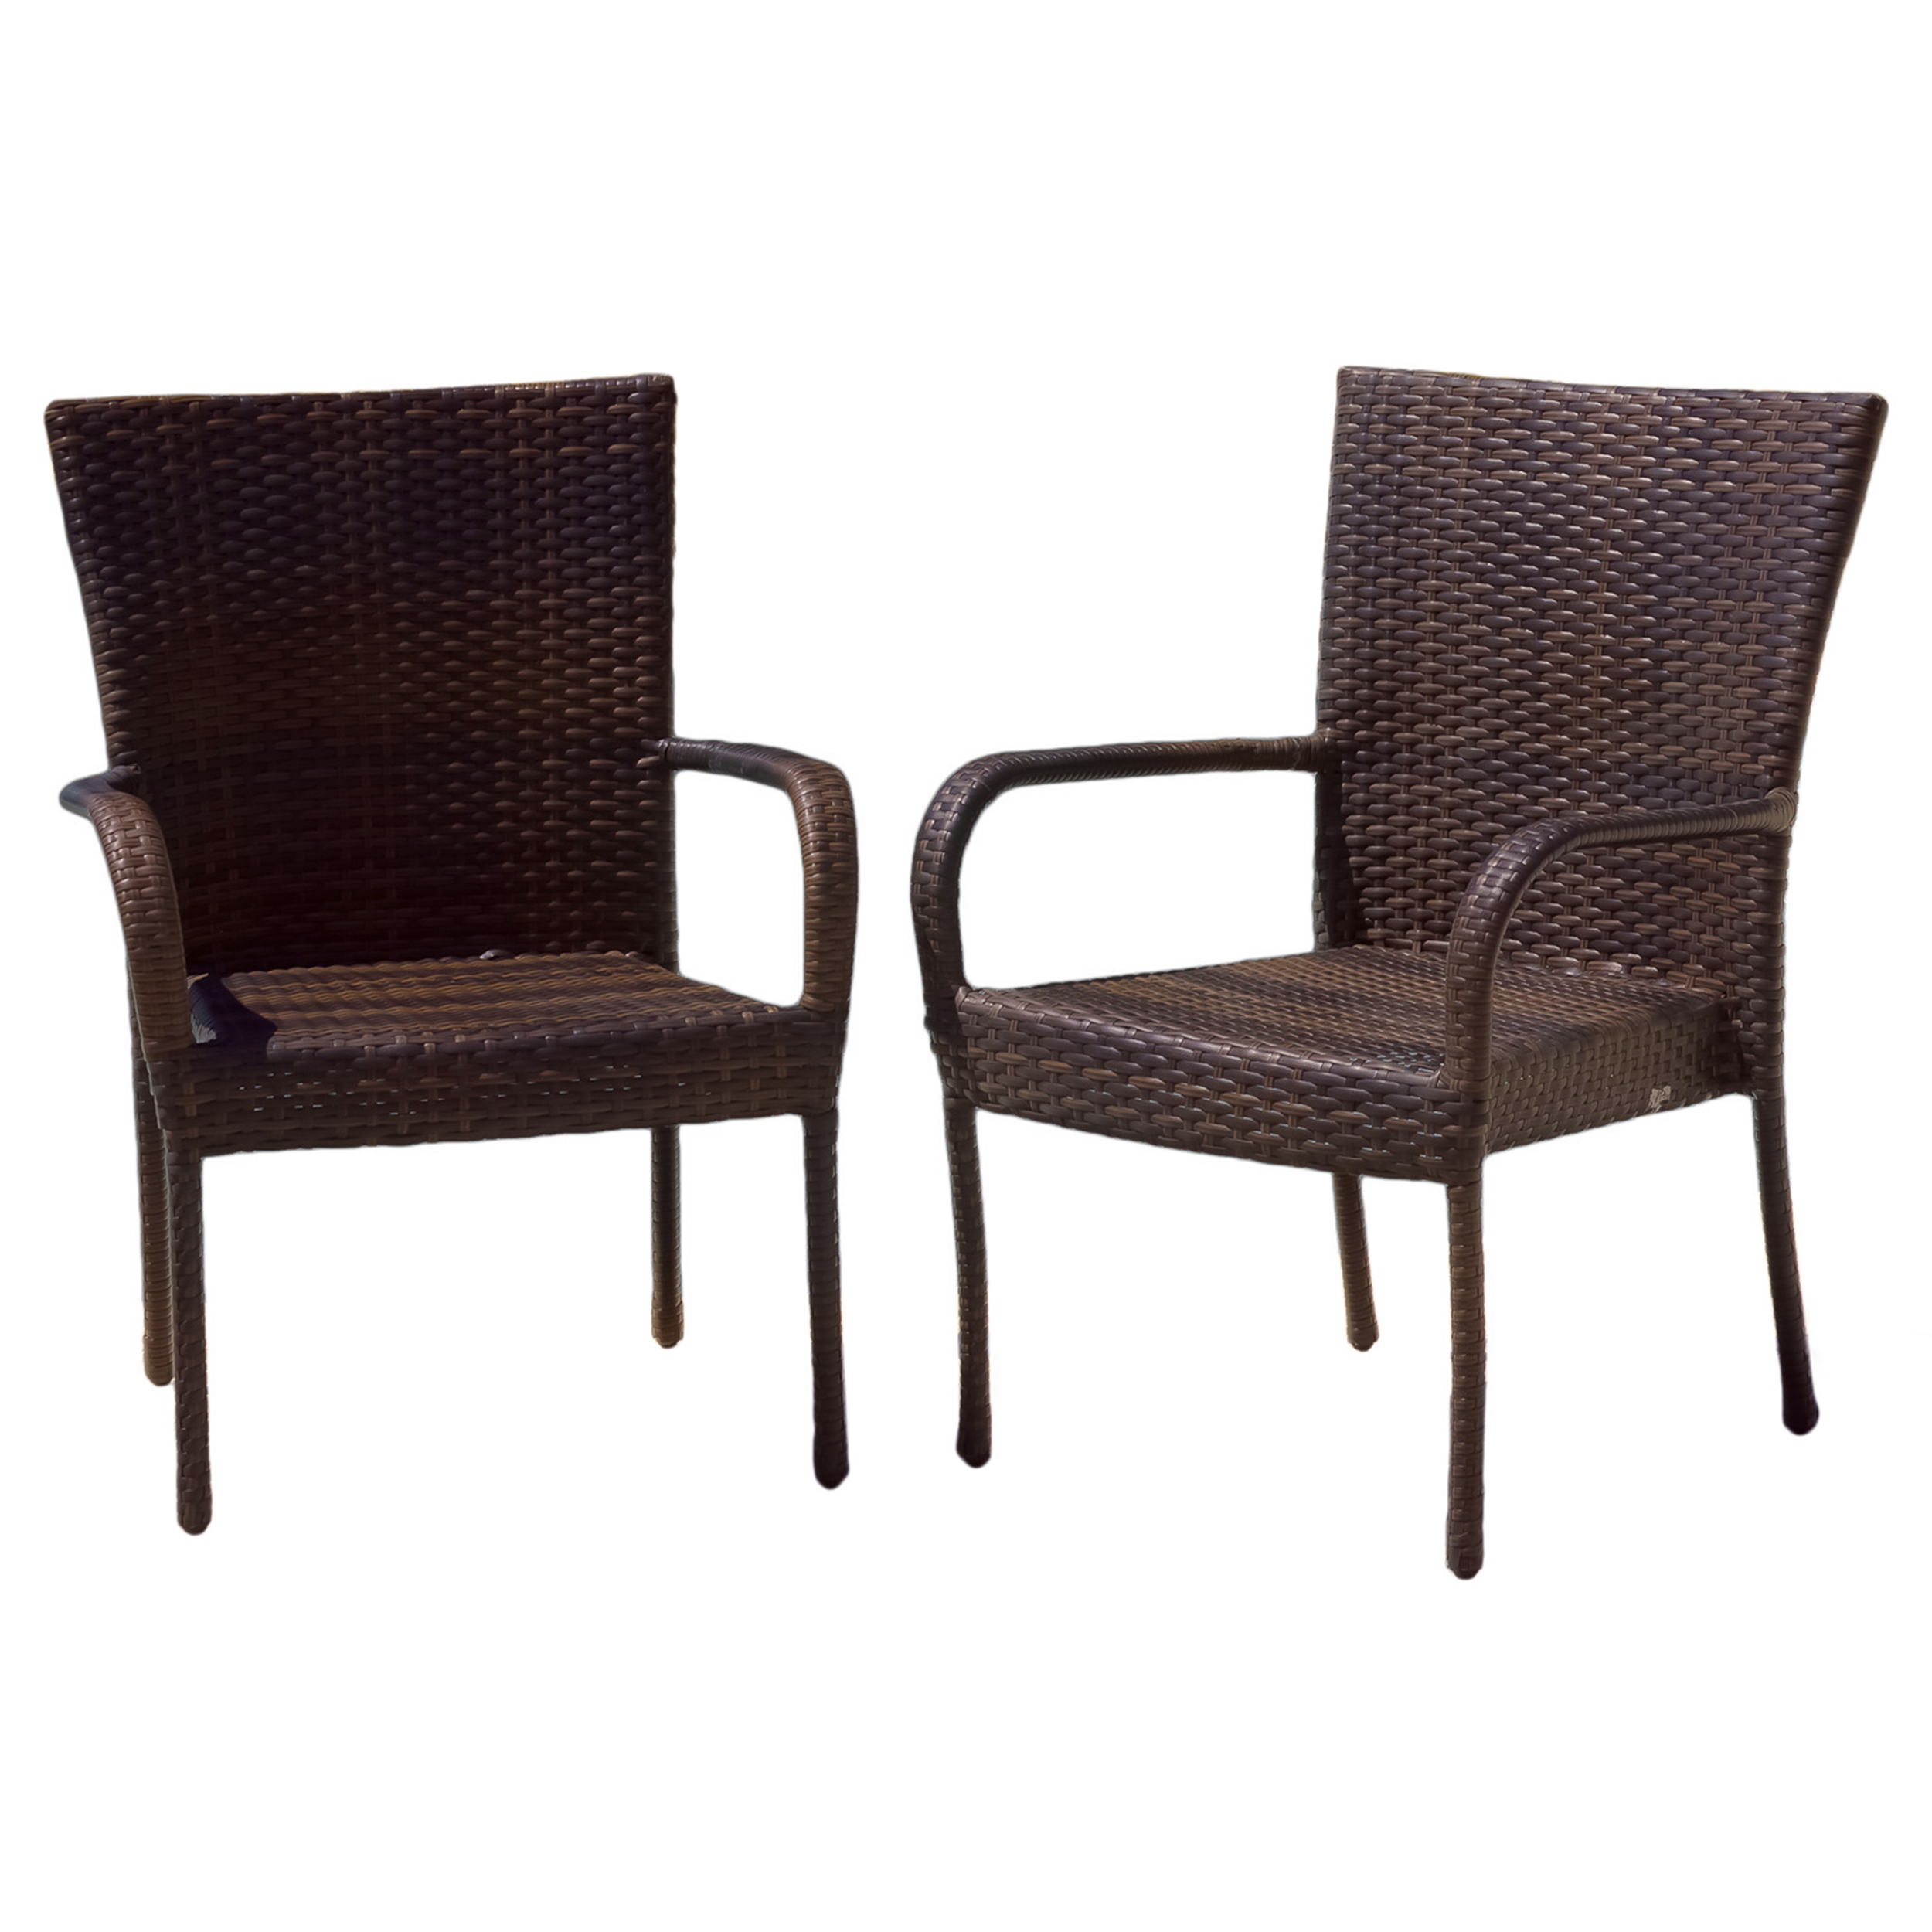 Kailua Outdoor Wicker Dining Arm Chairs, Set Of 2, Multiple Colors